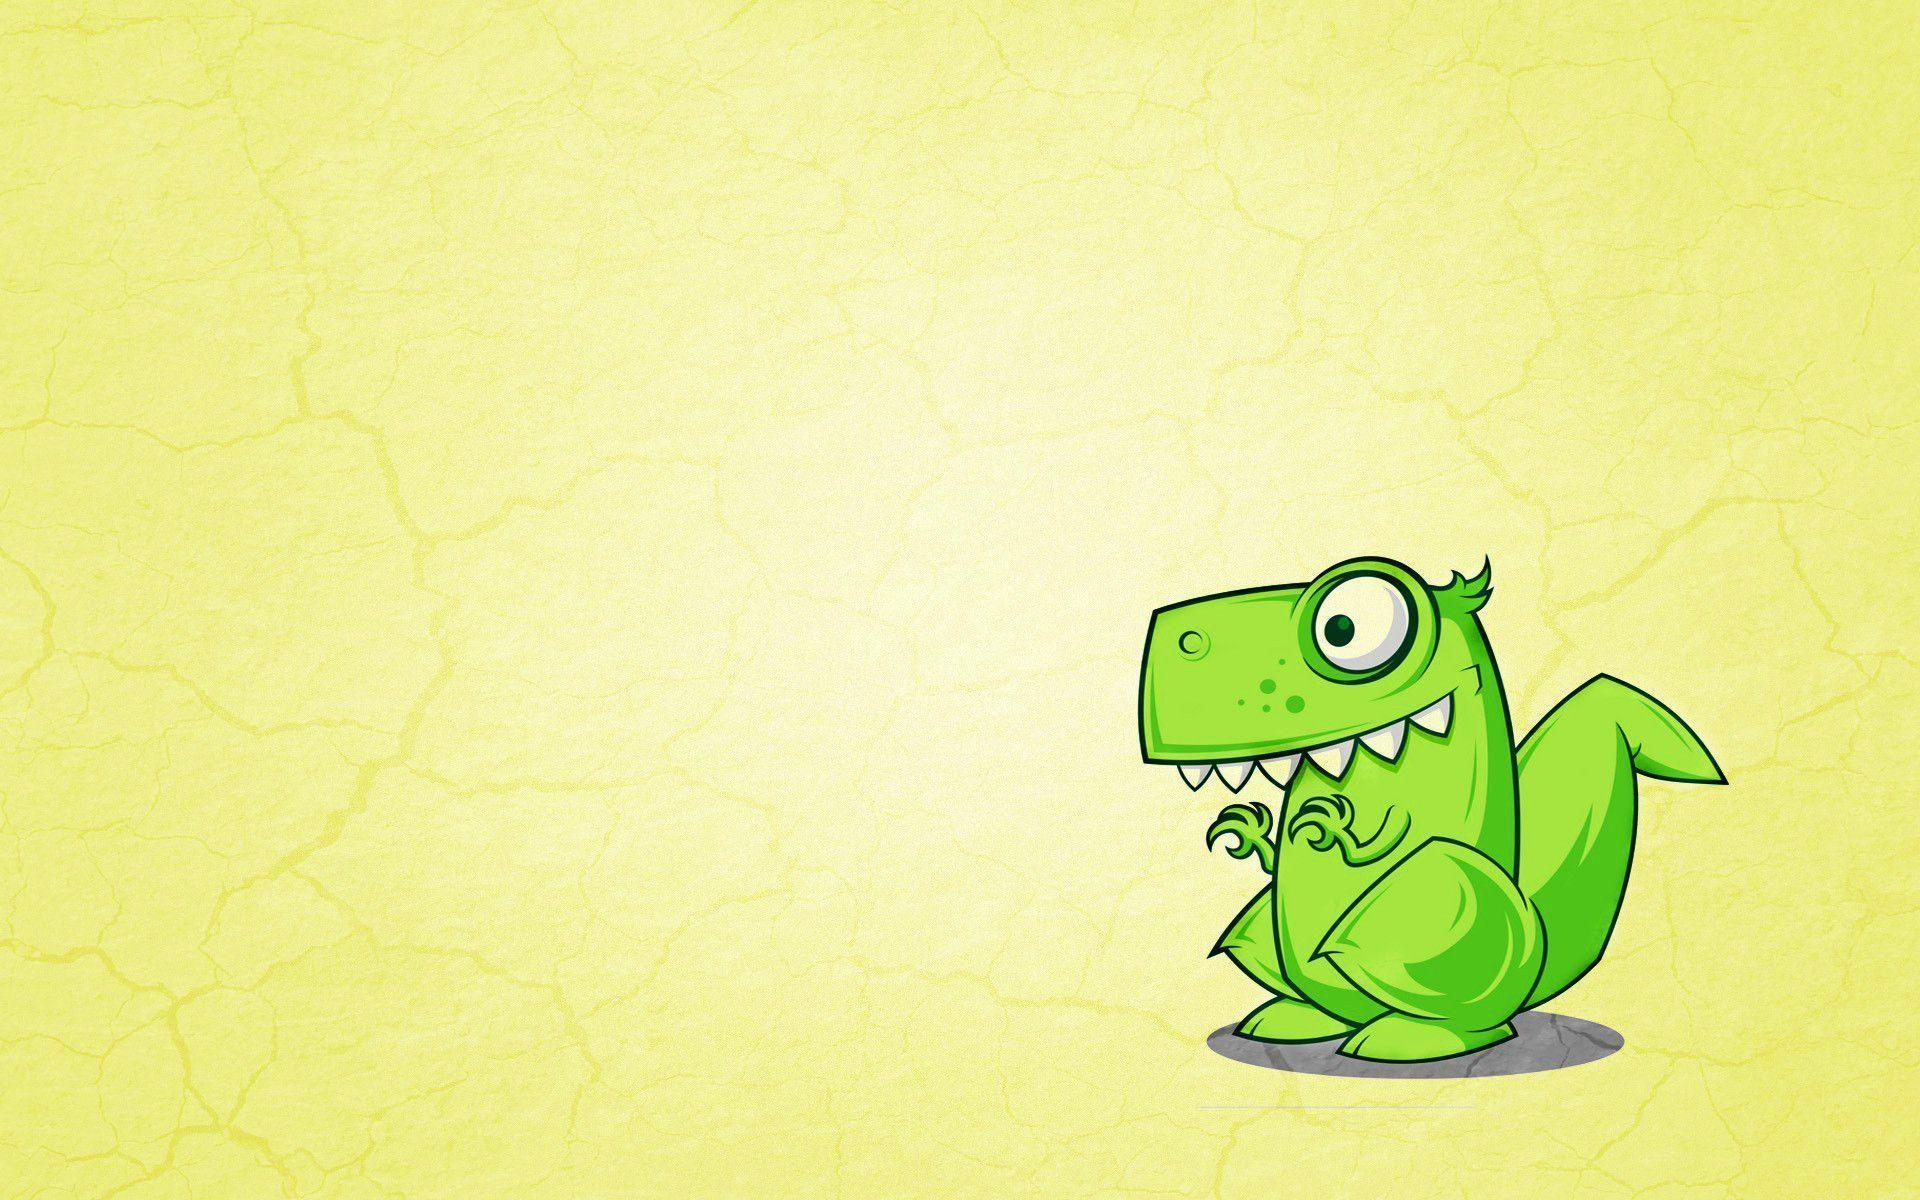 Cute Dinosaur Backgrounds - Wallpaper Cave